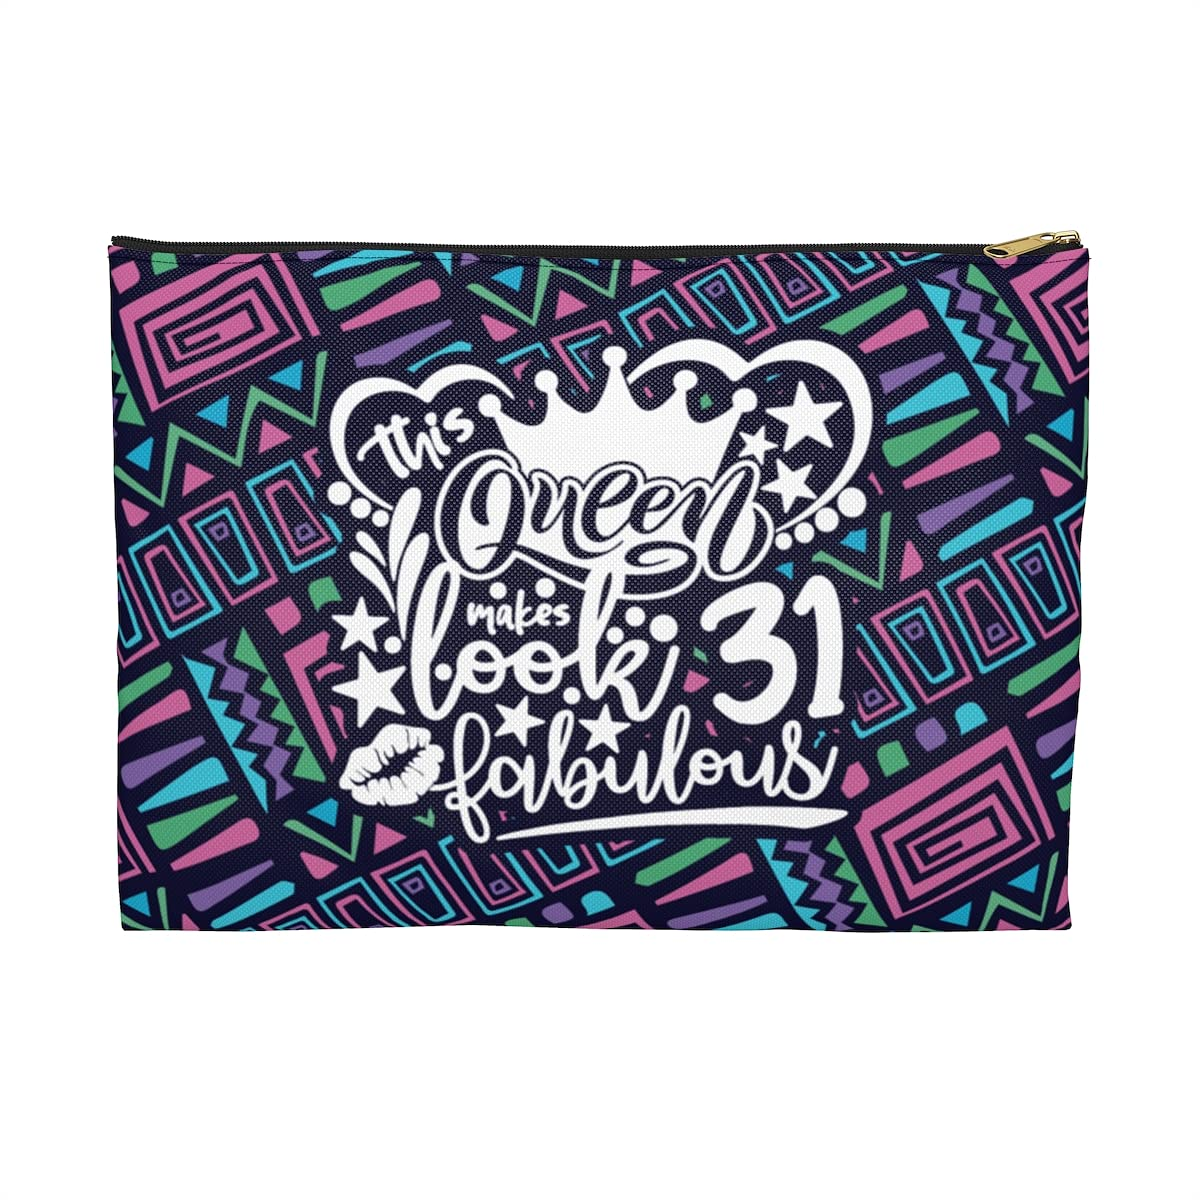 This Queen Makes 31 Raleigh Many popular brands Mall Look Fabulous Birthday for Abst Gifts Women